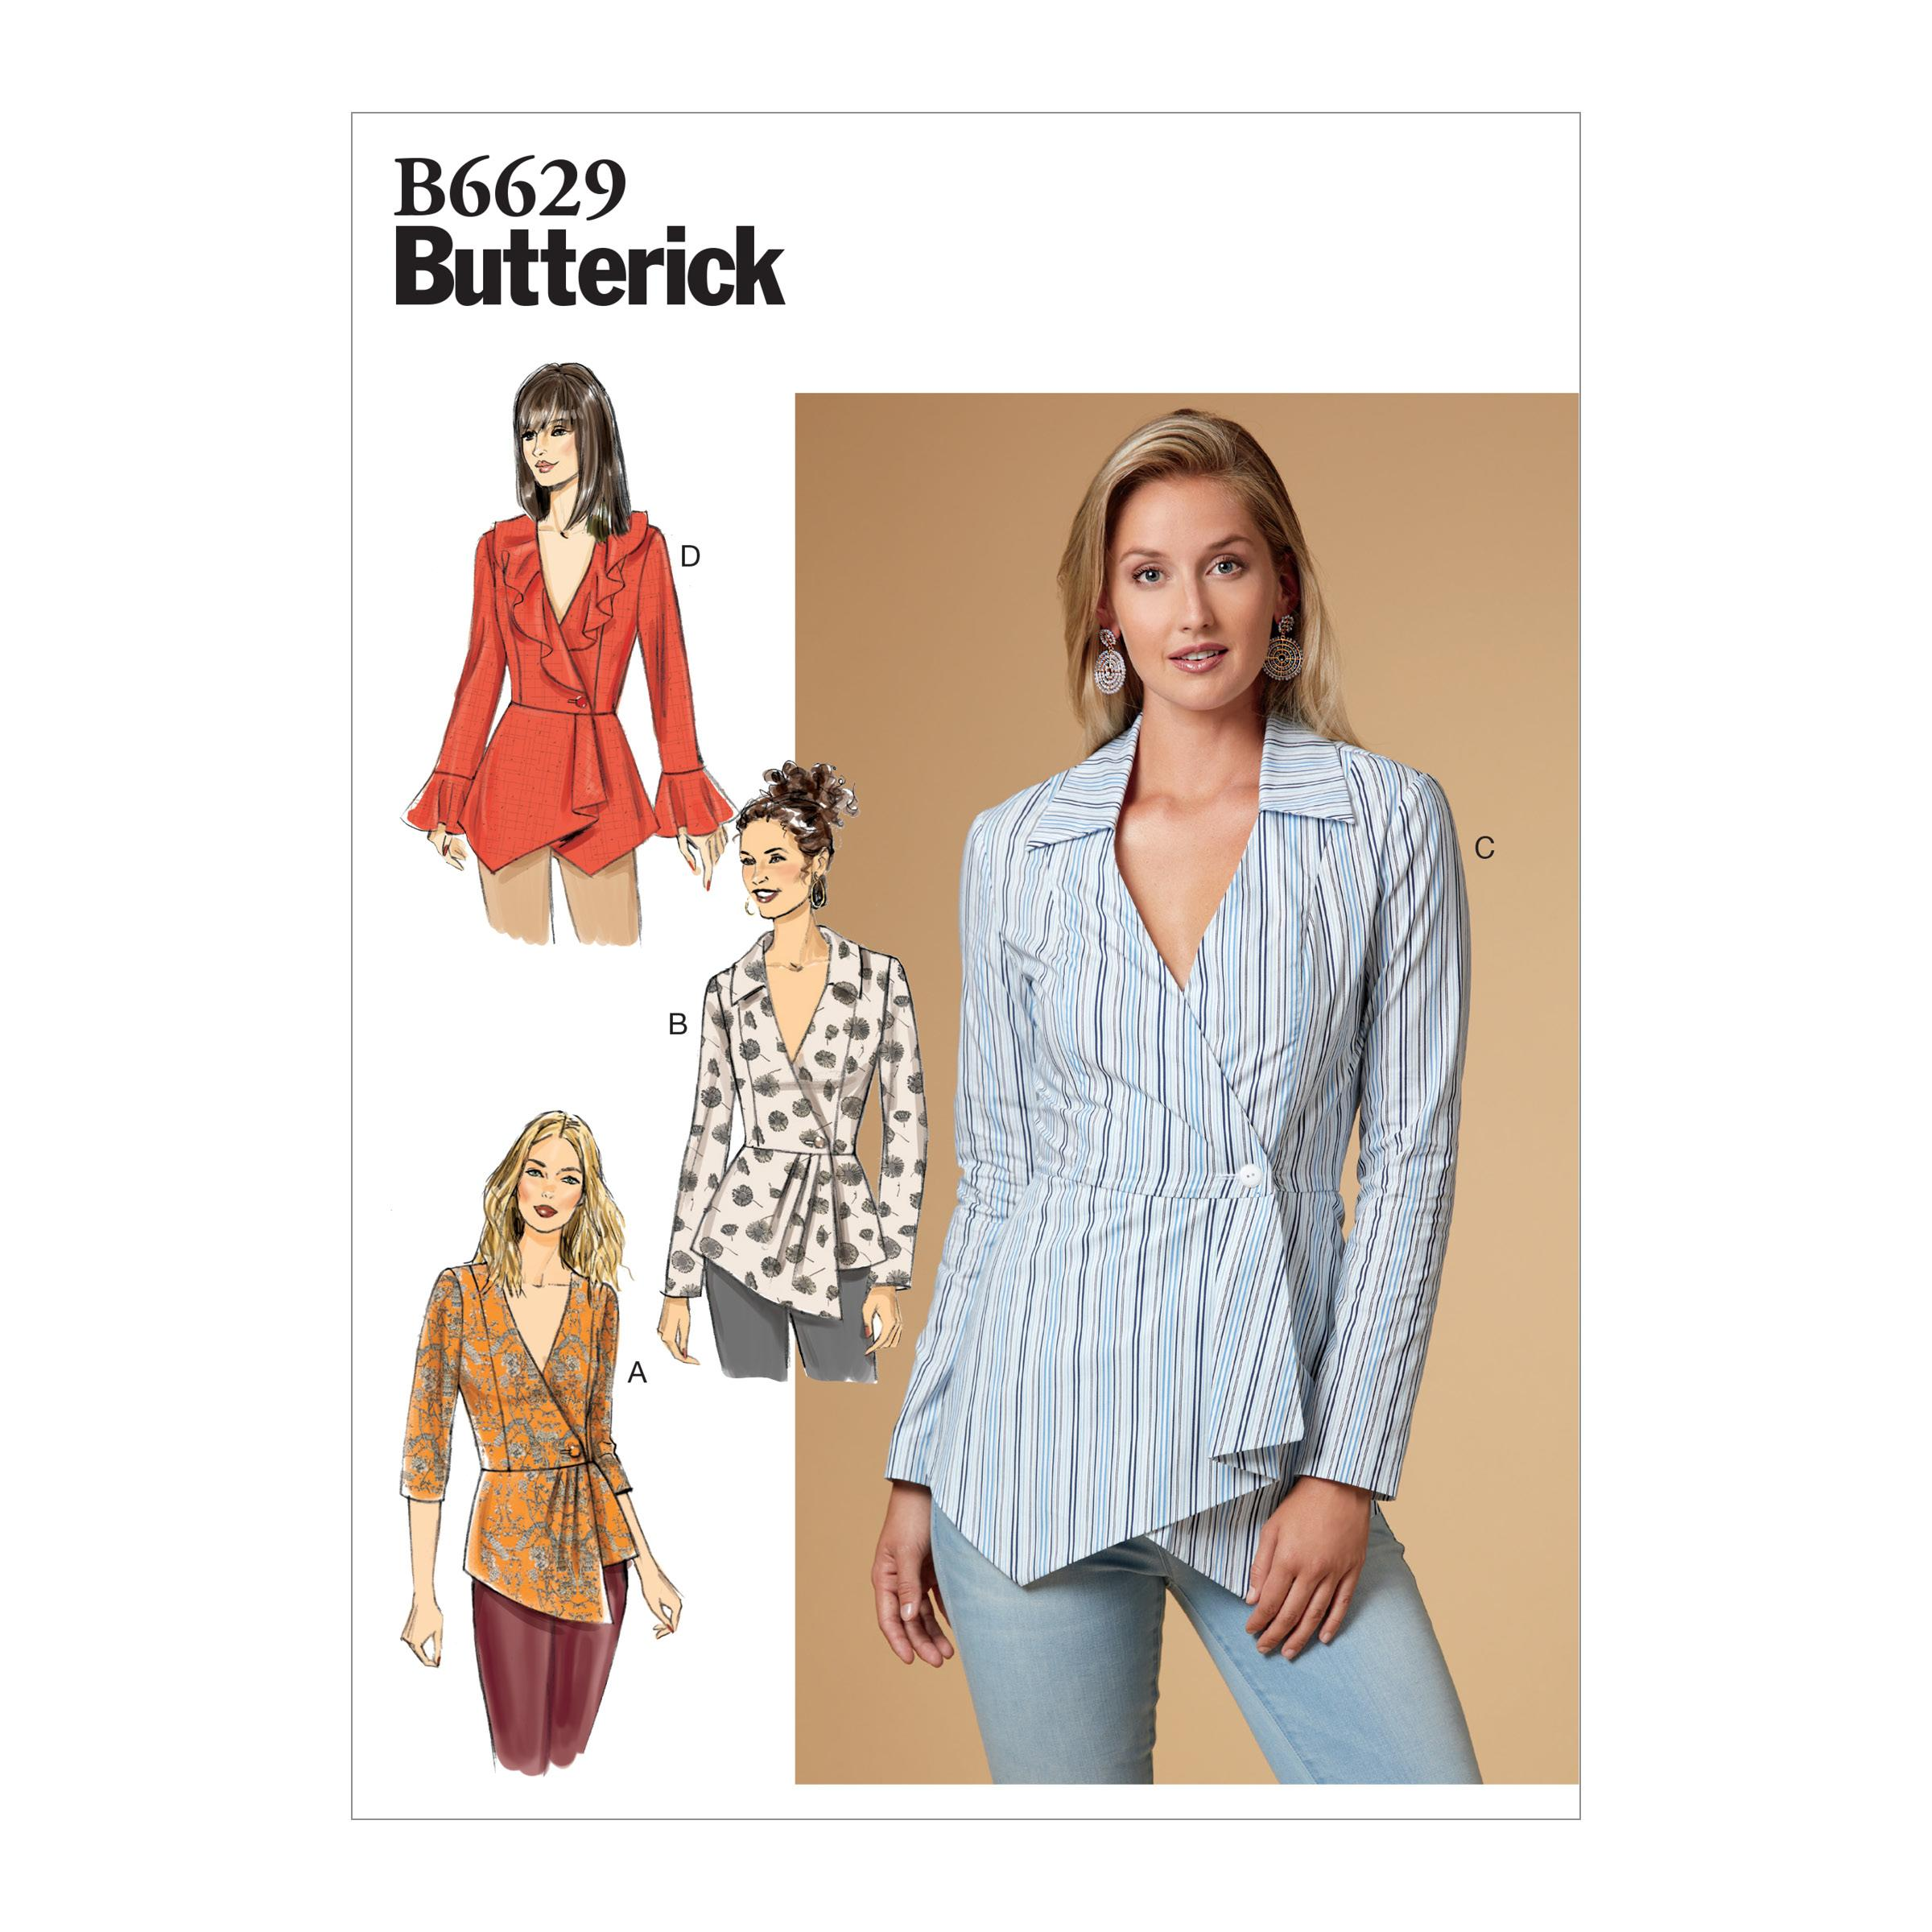 Butterick B6629 Misses' Top